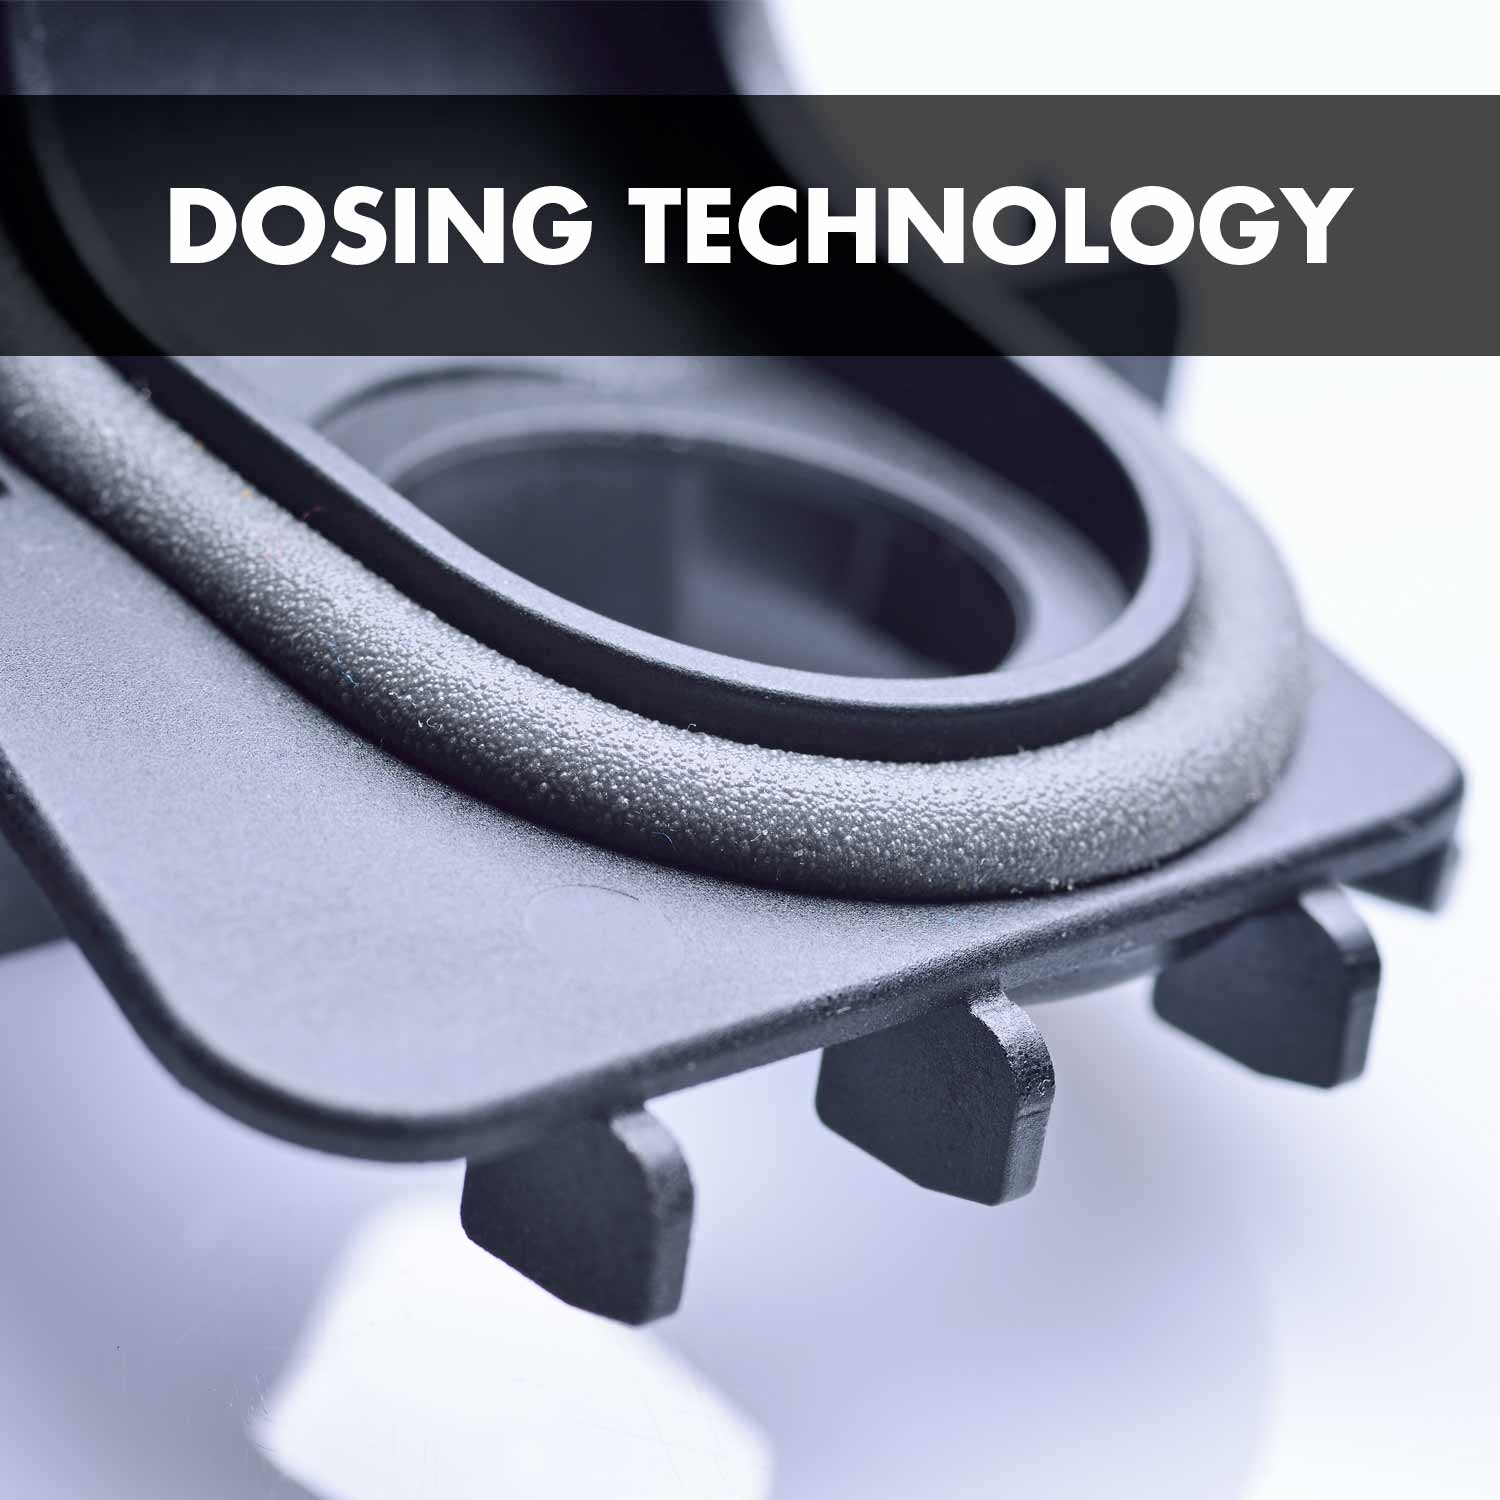 Dosing technology: Dosing of sealants directly onto components precisely matching the contour.